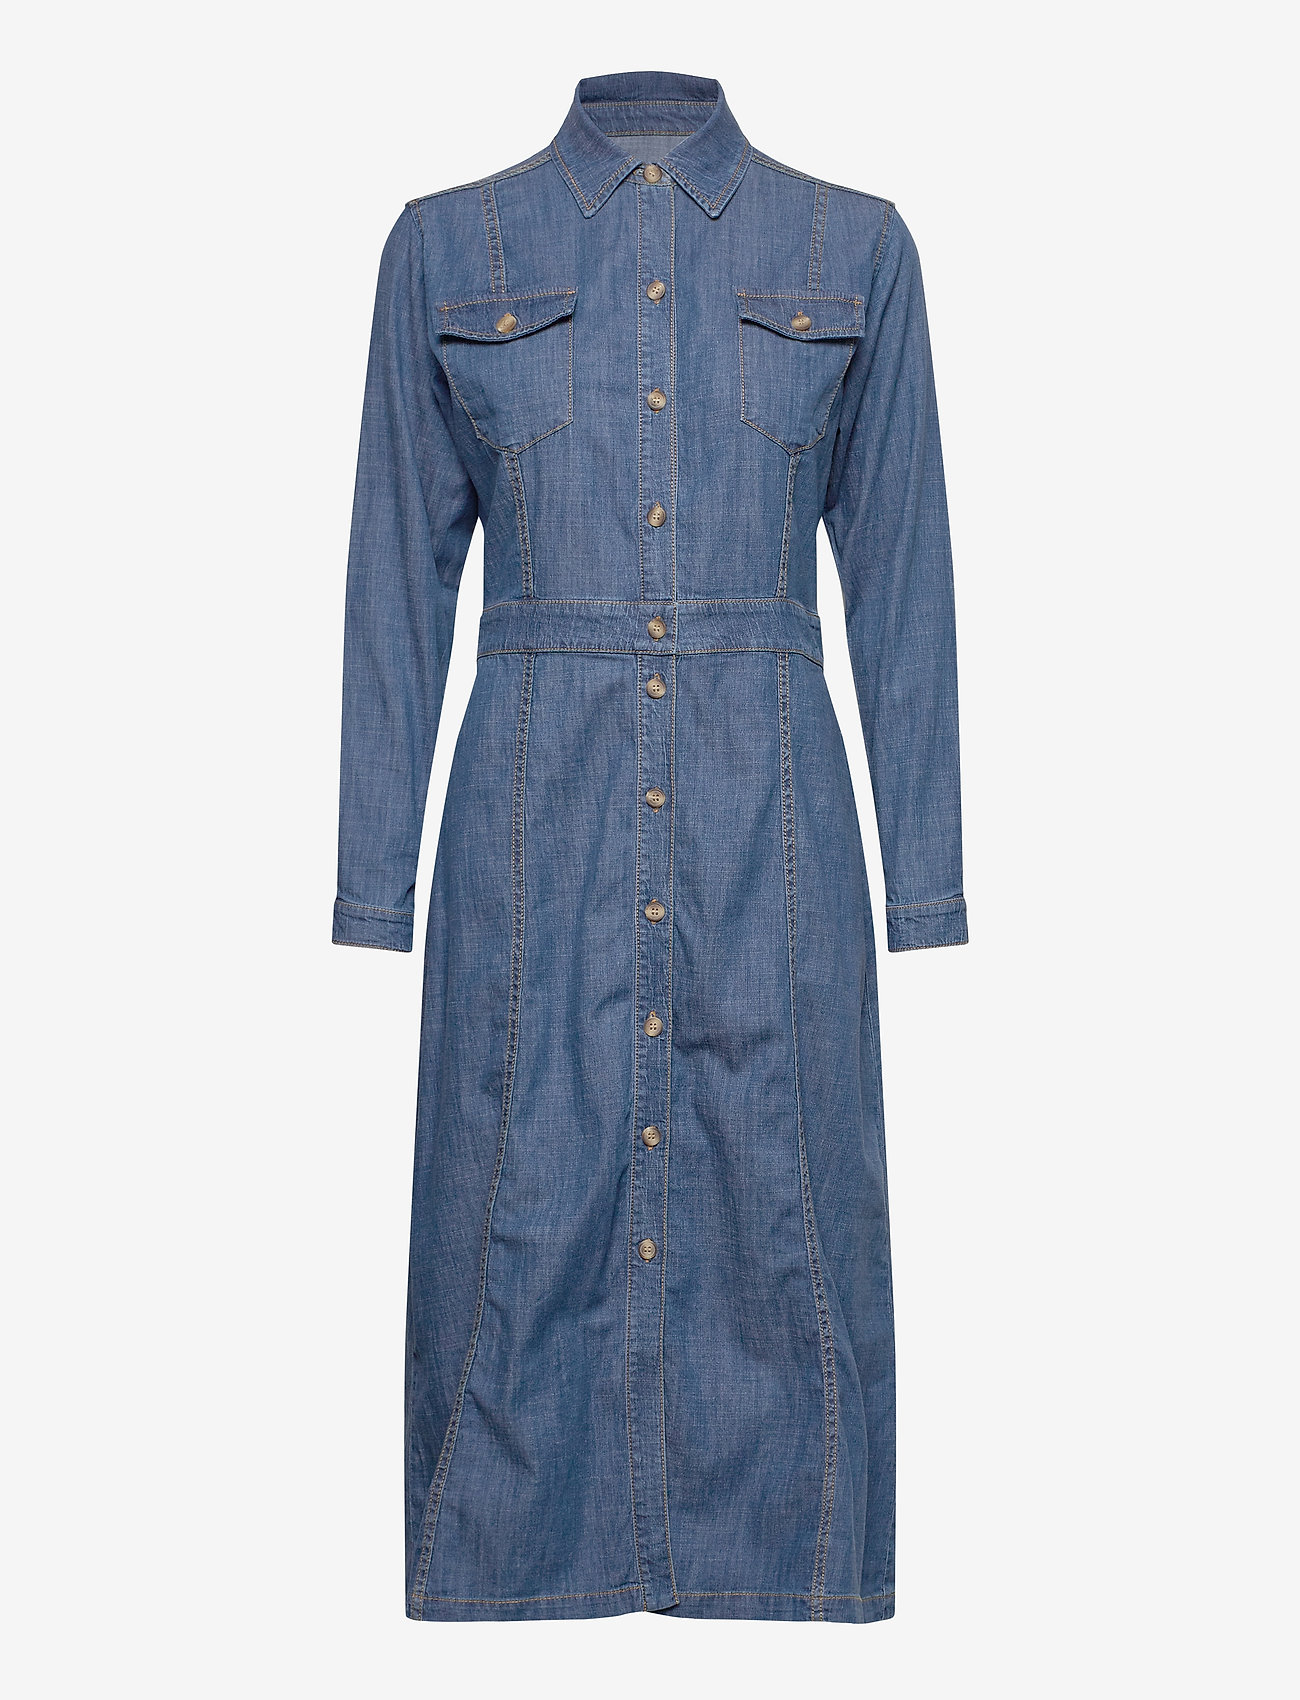 SAND - R/Denim - Mati - robes en jeans - blue - 0